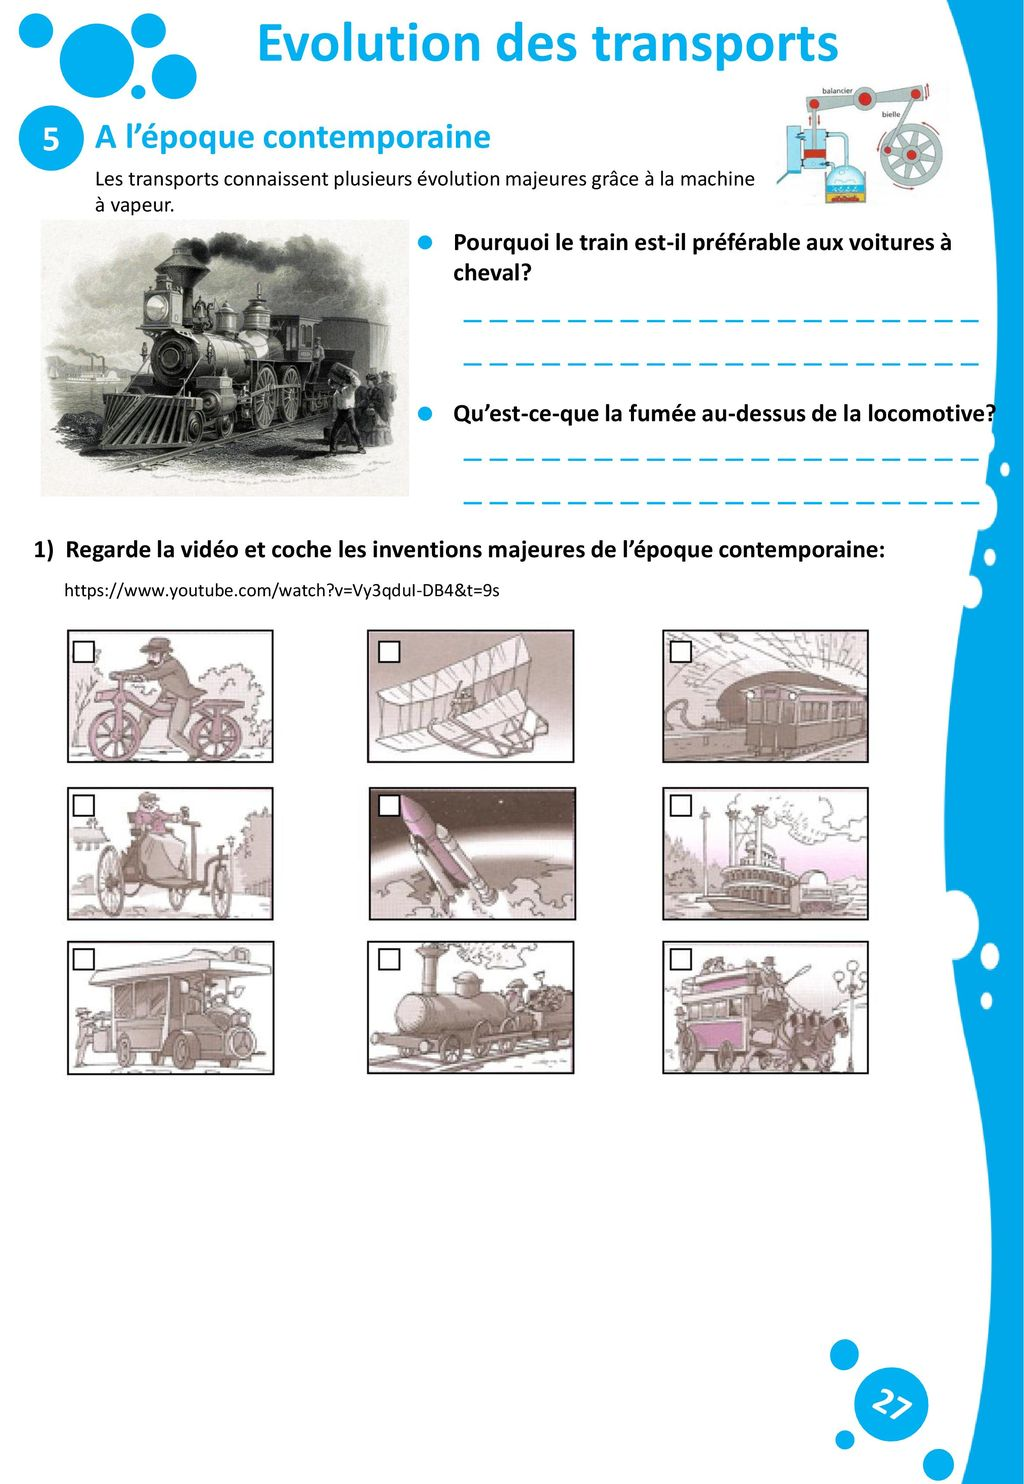 Evolution des transports